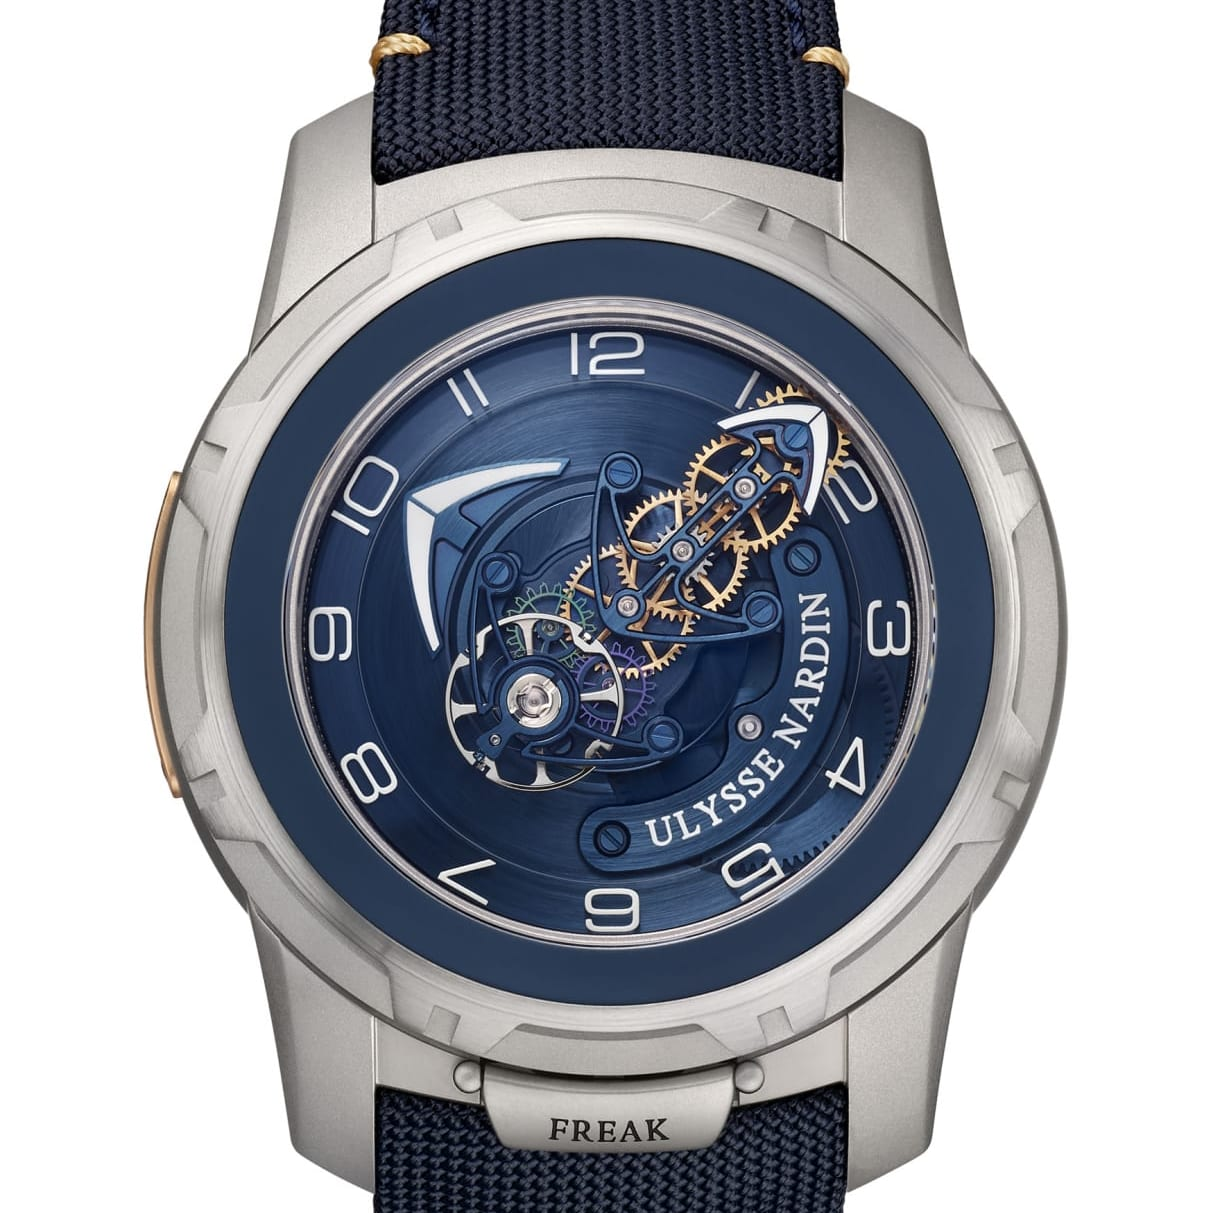 ulysse_nardin_freak_out_blue_gold_3